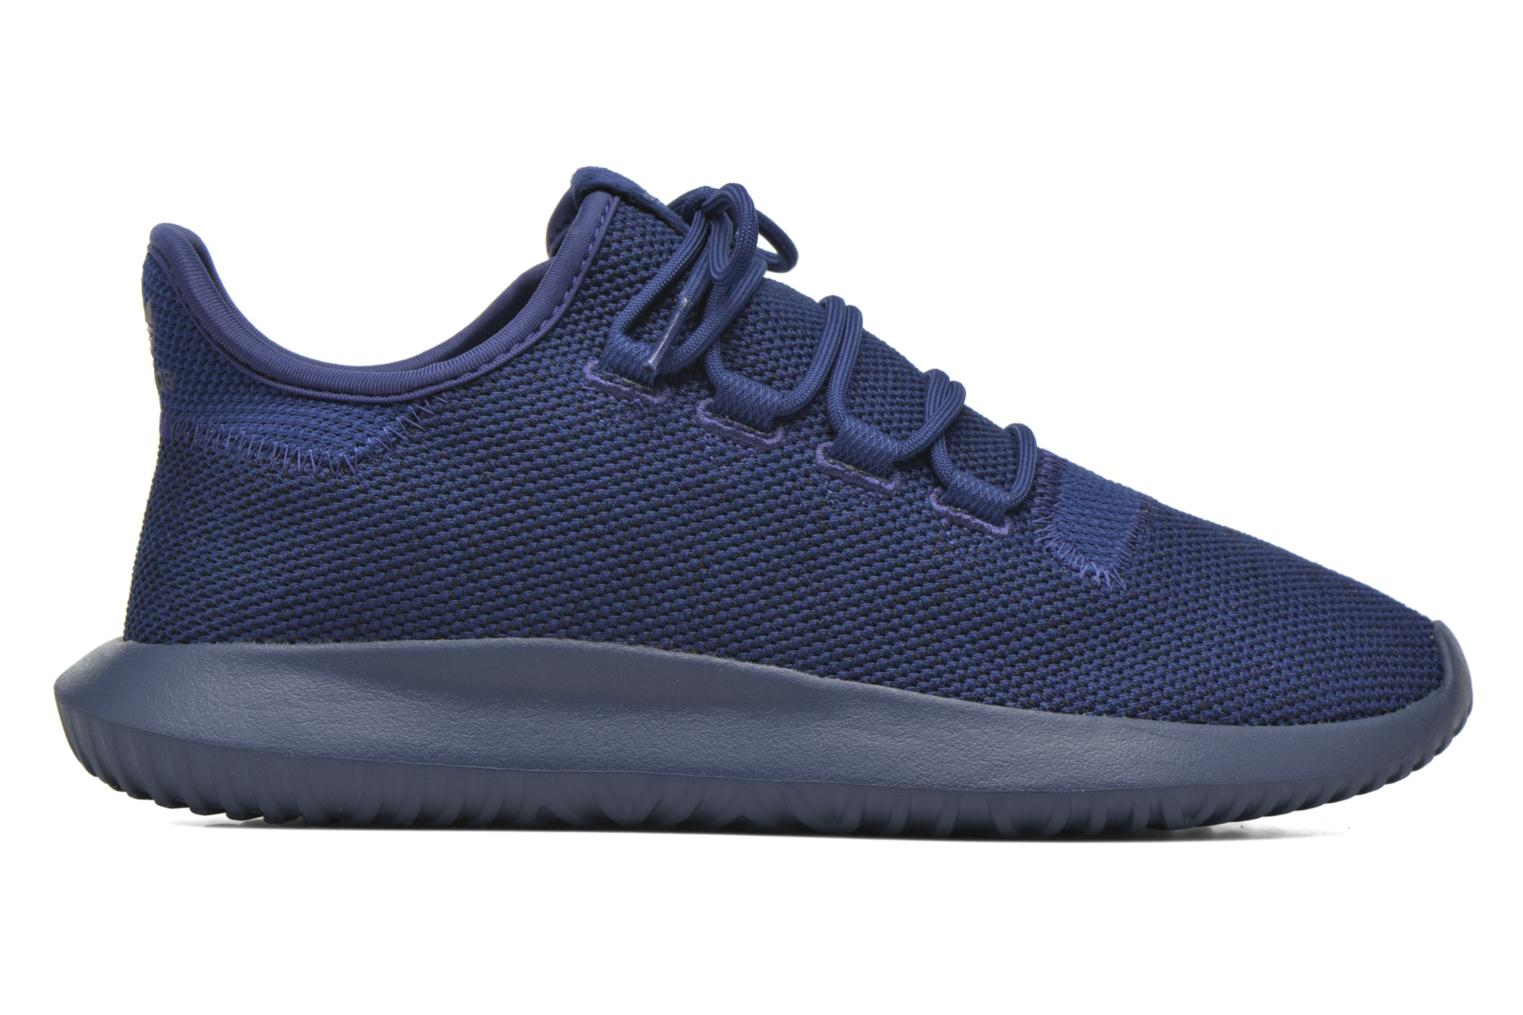 Baskets Adidas Originals Tubular Shadow Knit Bleu vue derrière